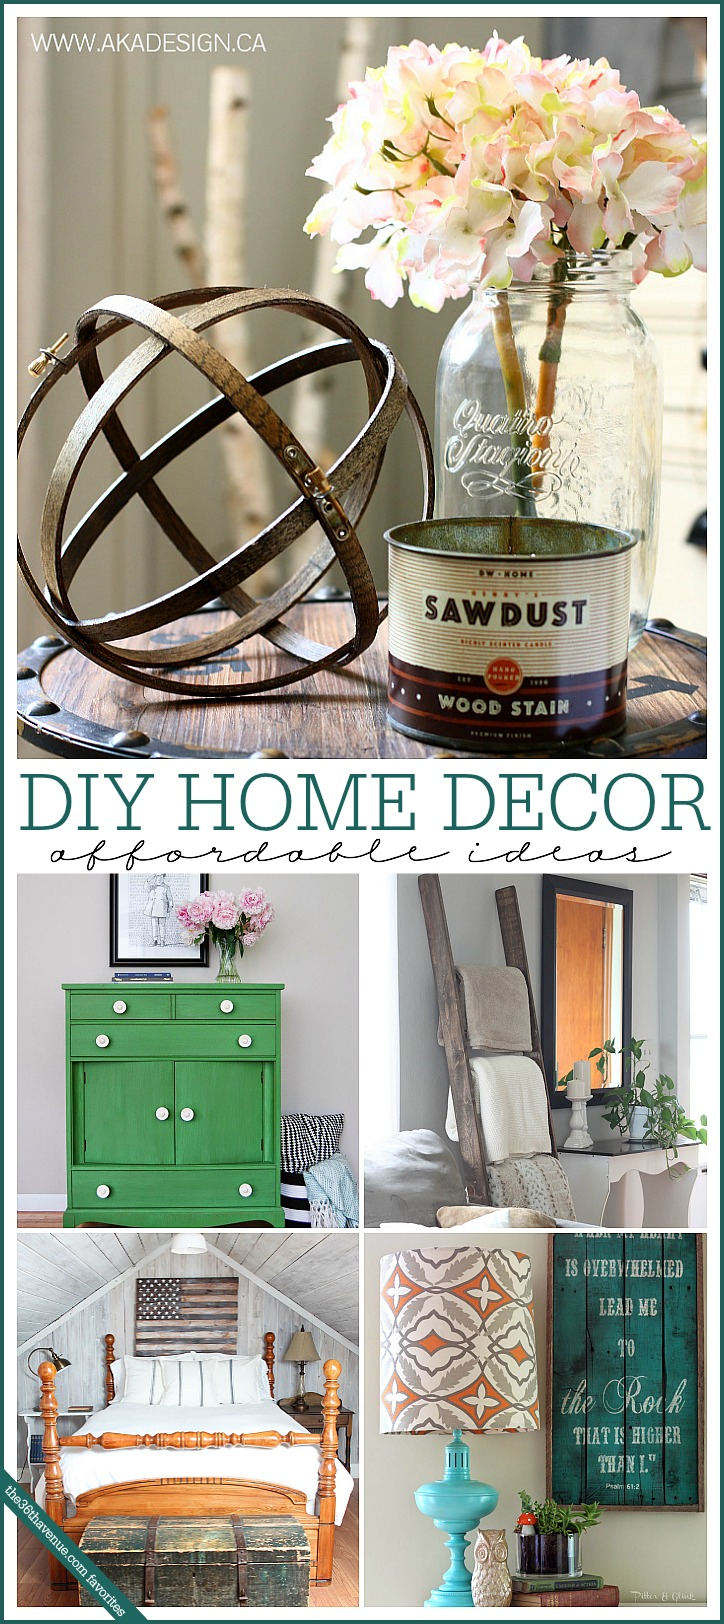 Home decor diy ideas the 36th avenue - Home decor ideas diy ...